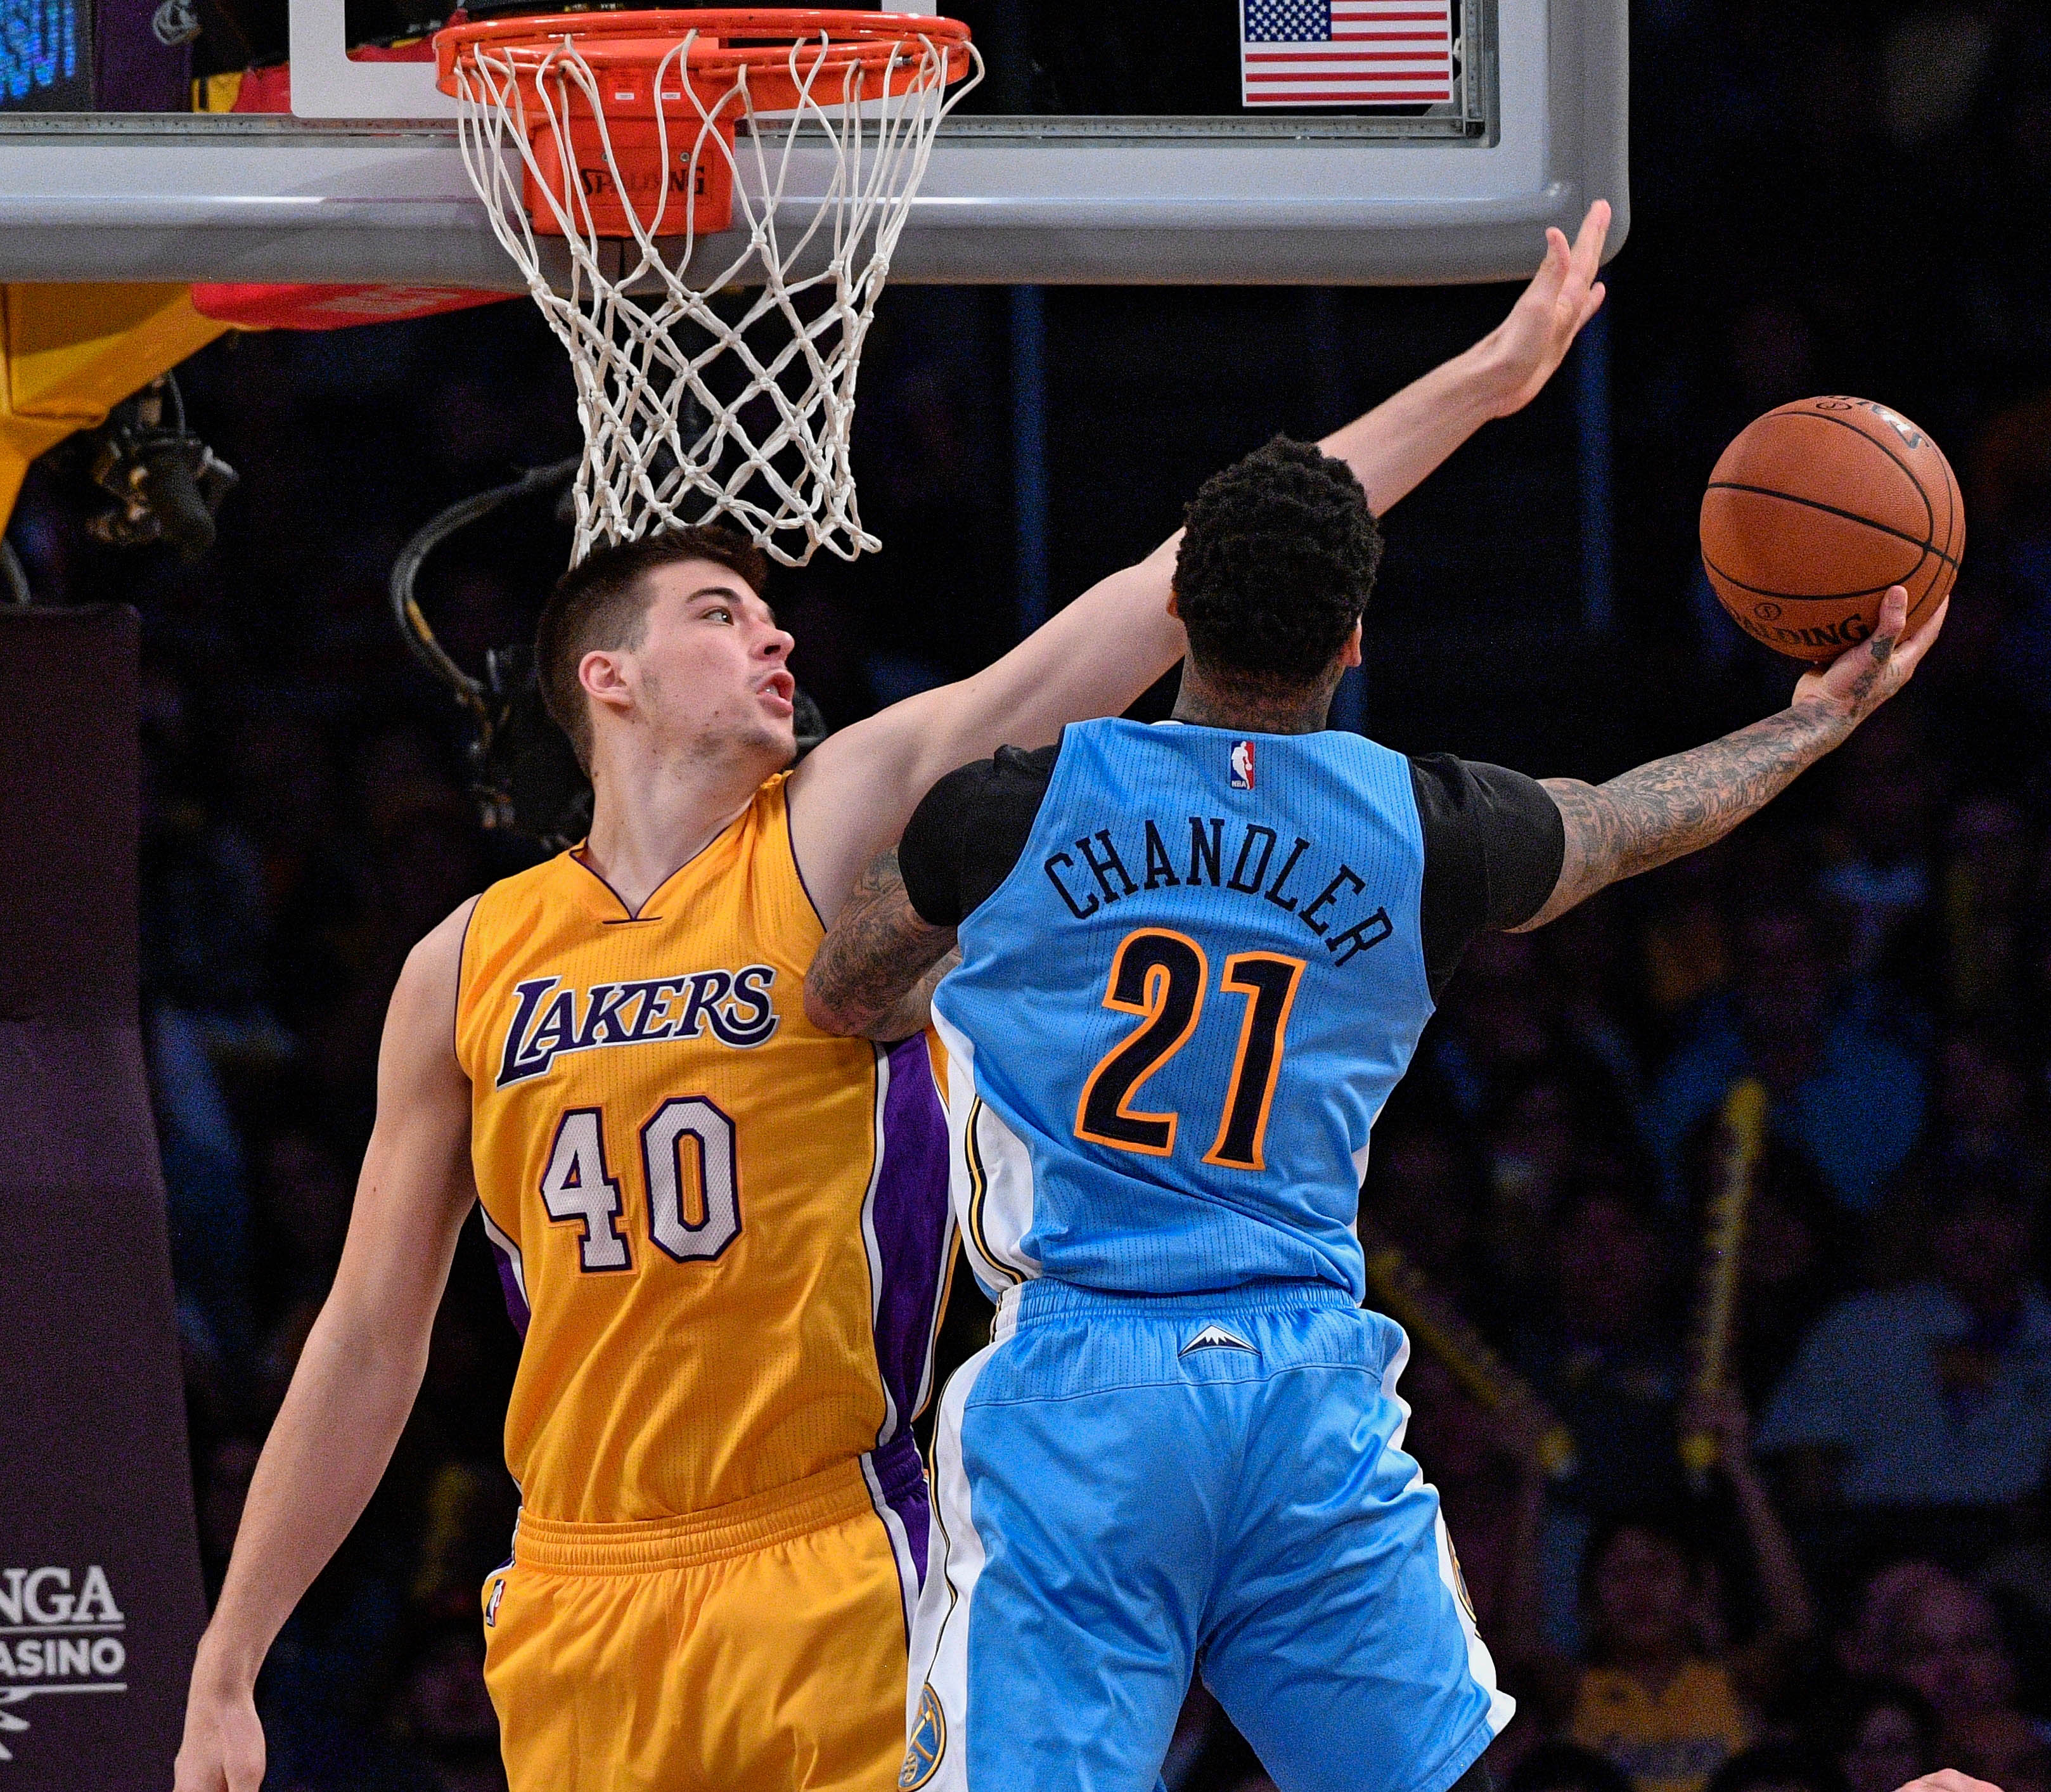 Jan 31, 2017; Los Angeles, CA, USA; Denver Nuggets forward Wilson Chandler (21) tries to score past Los Angeles Lakers center Ivica Zubac (40) during the second half at Staples Center. Mandatory Credit: Robert Hanashiro-USA TODAY Sports